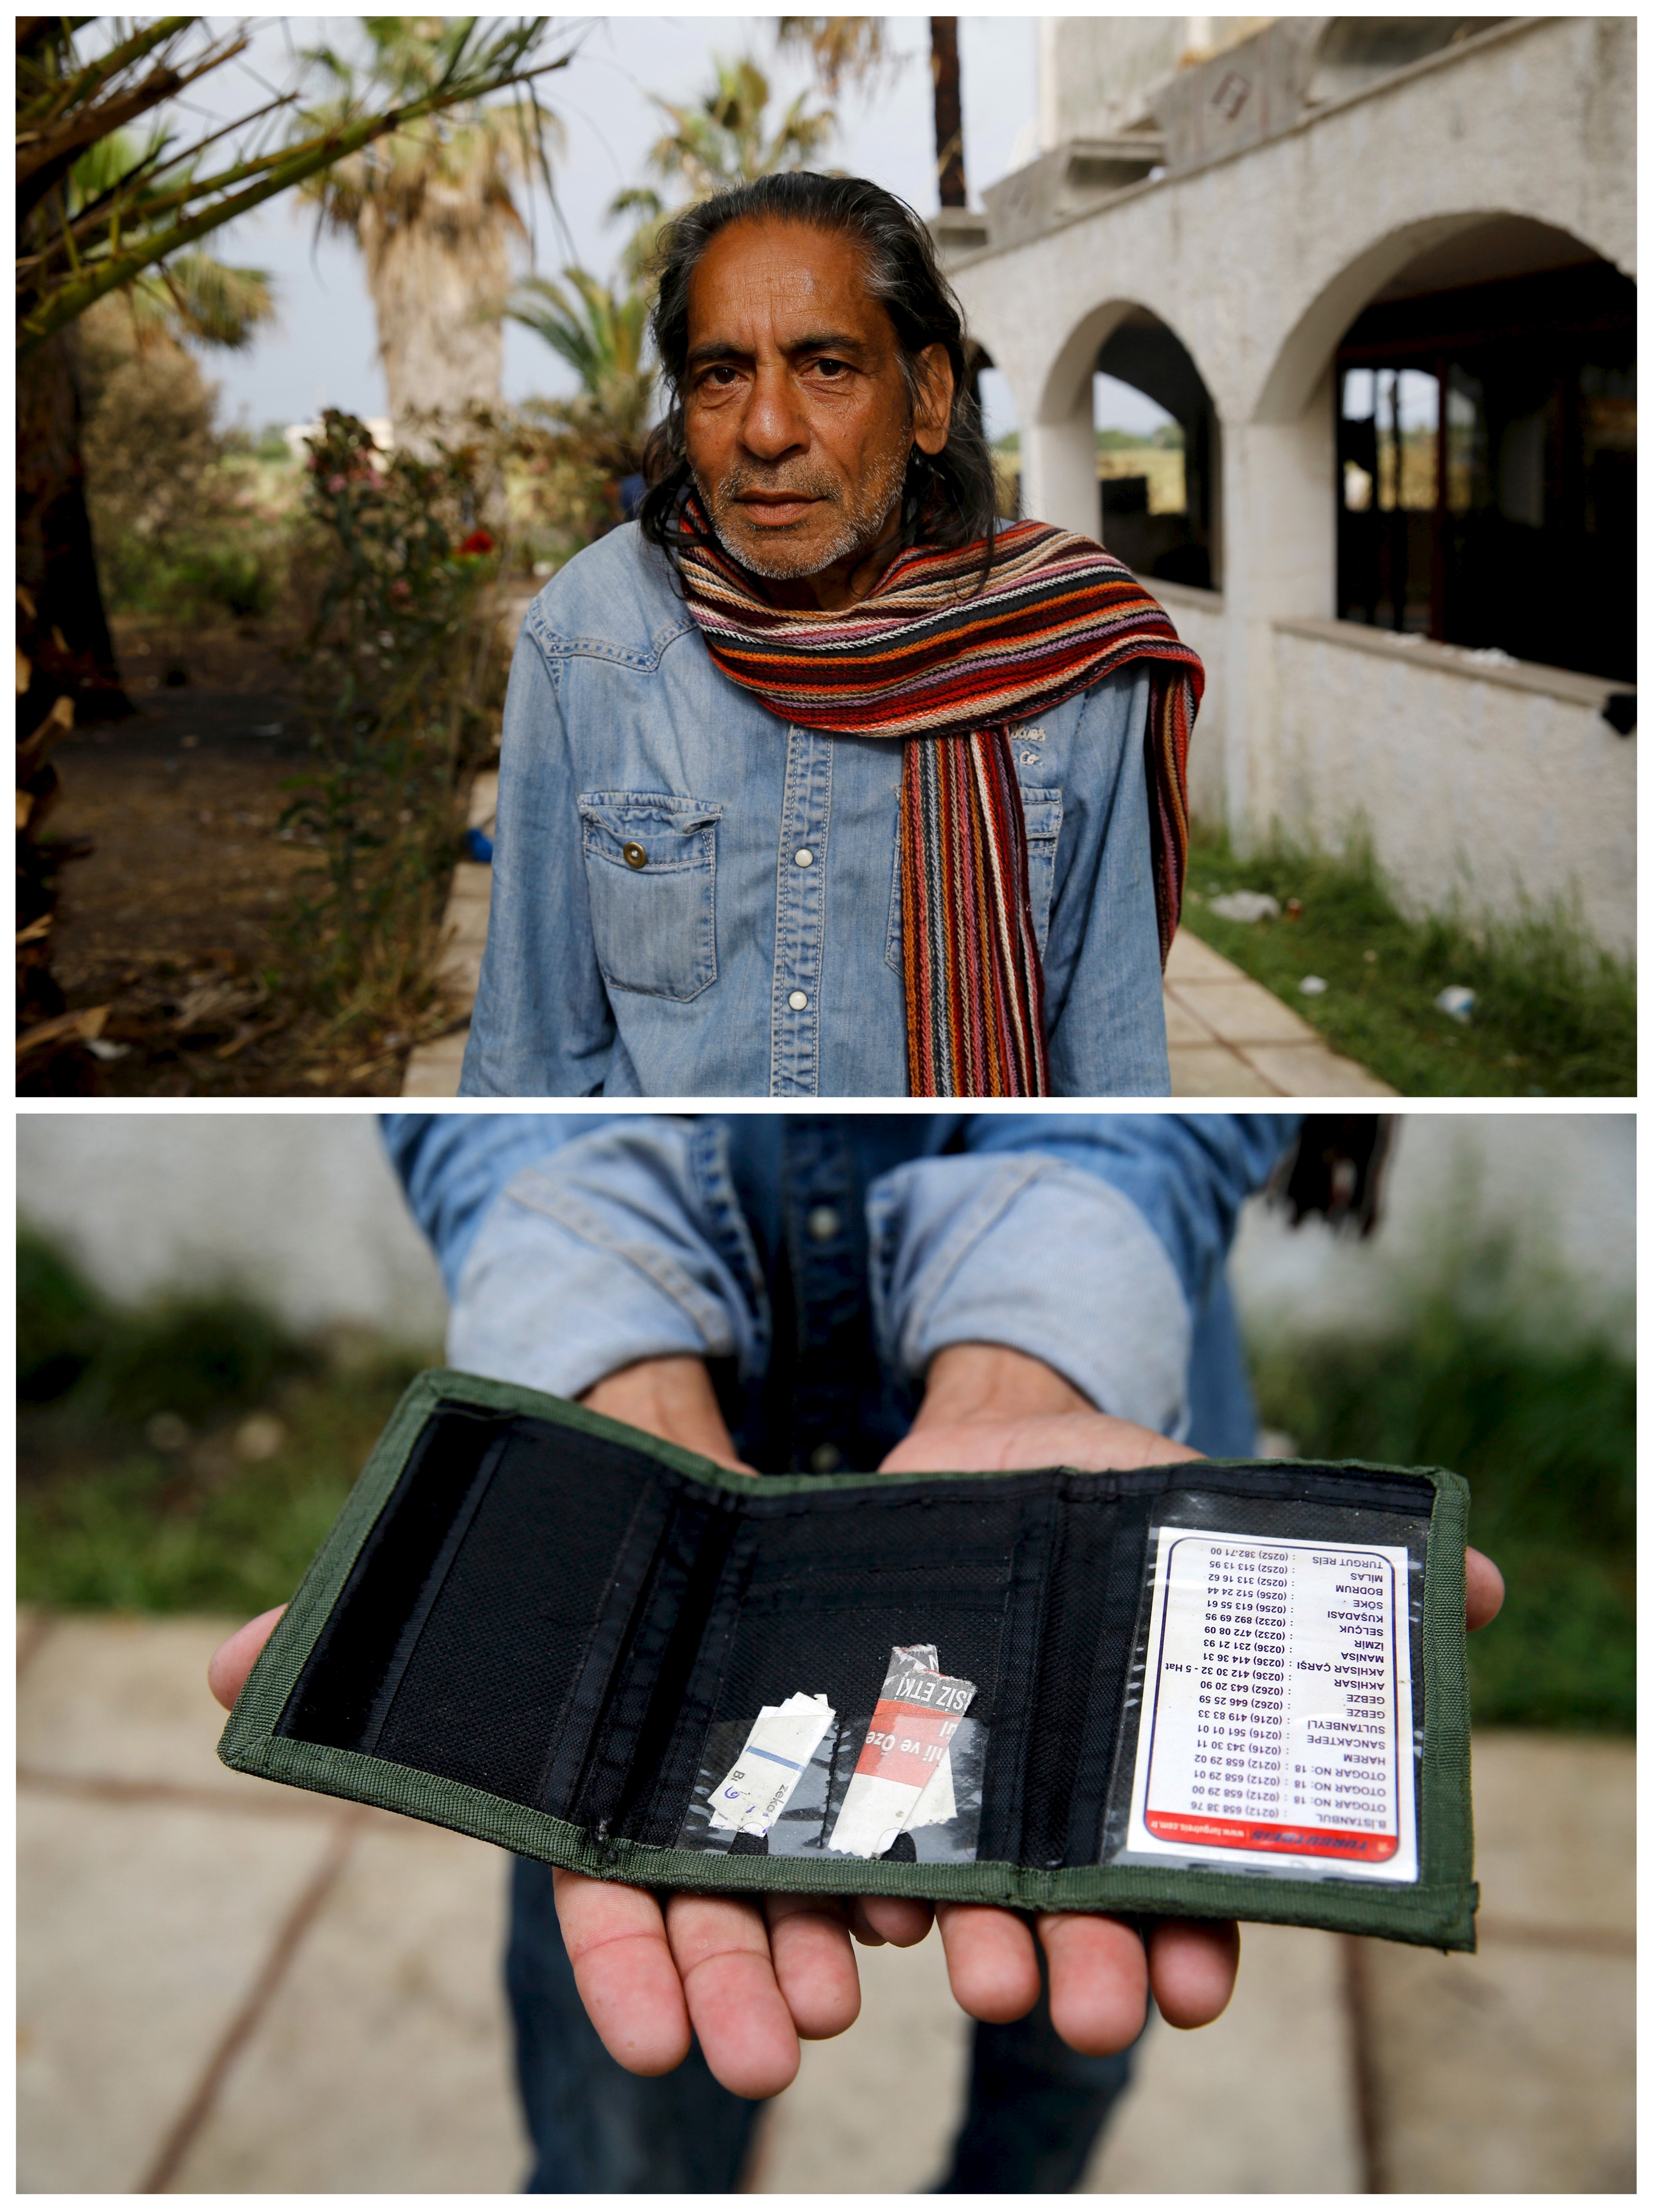 Pakistani migrant Mohamed Ayub, 51, holding the most valuable item he currently owns, his empty wallet, at a deserted hotel used by immigrants for temporary shelter on the Greek island of Kos, May 27, 2015. Photo by Yannis Behrakis/Reuters